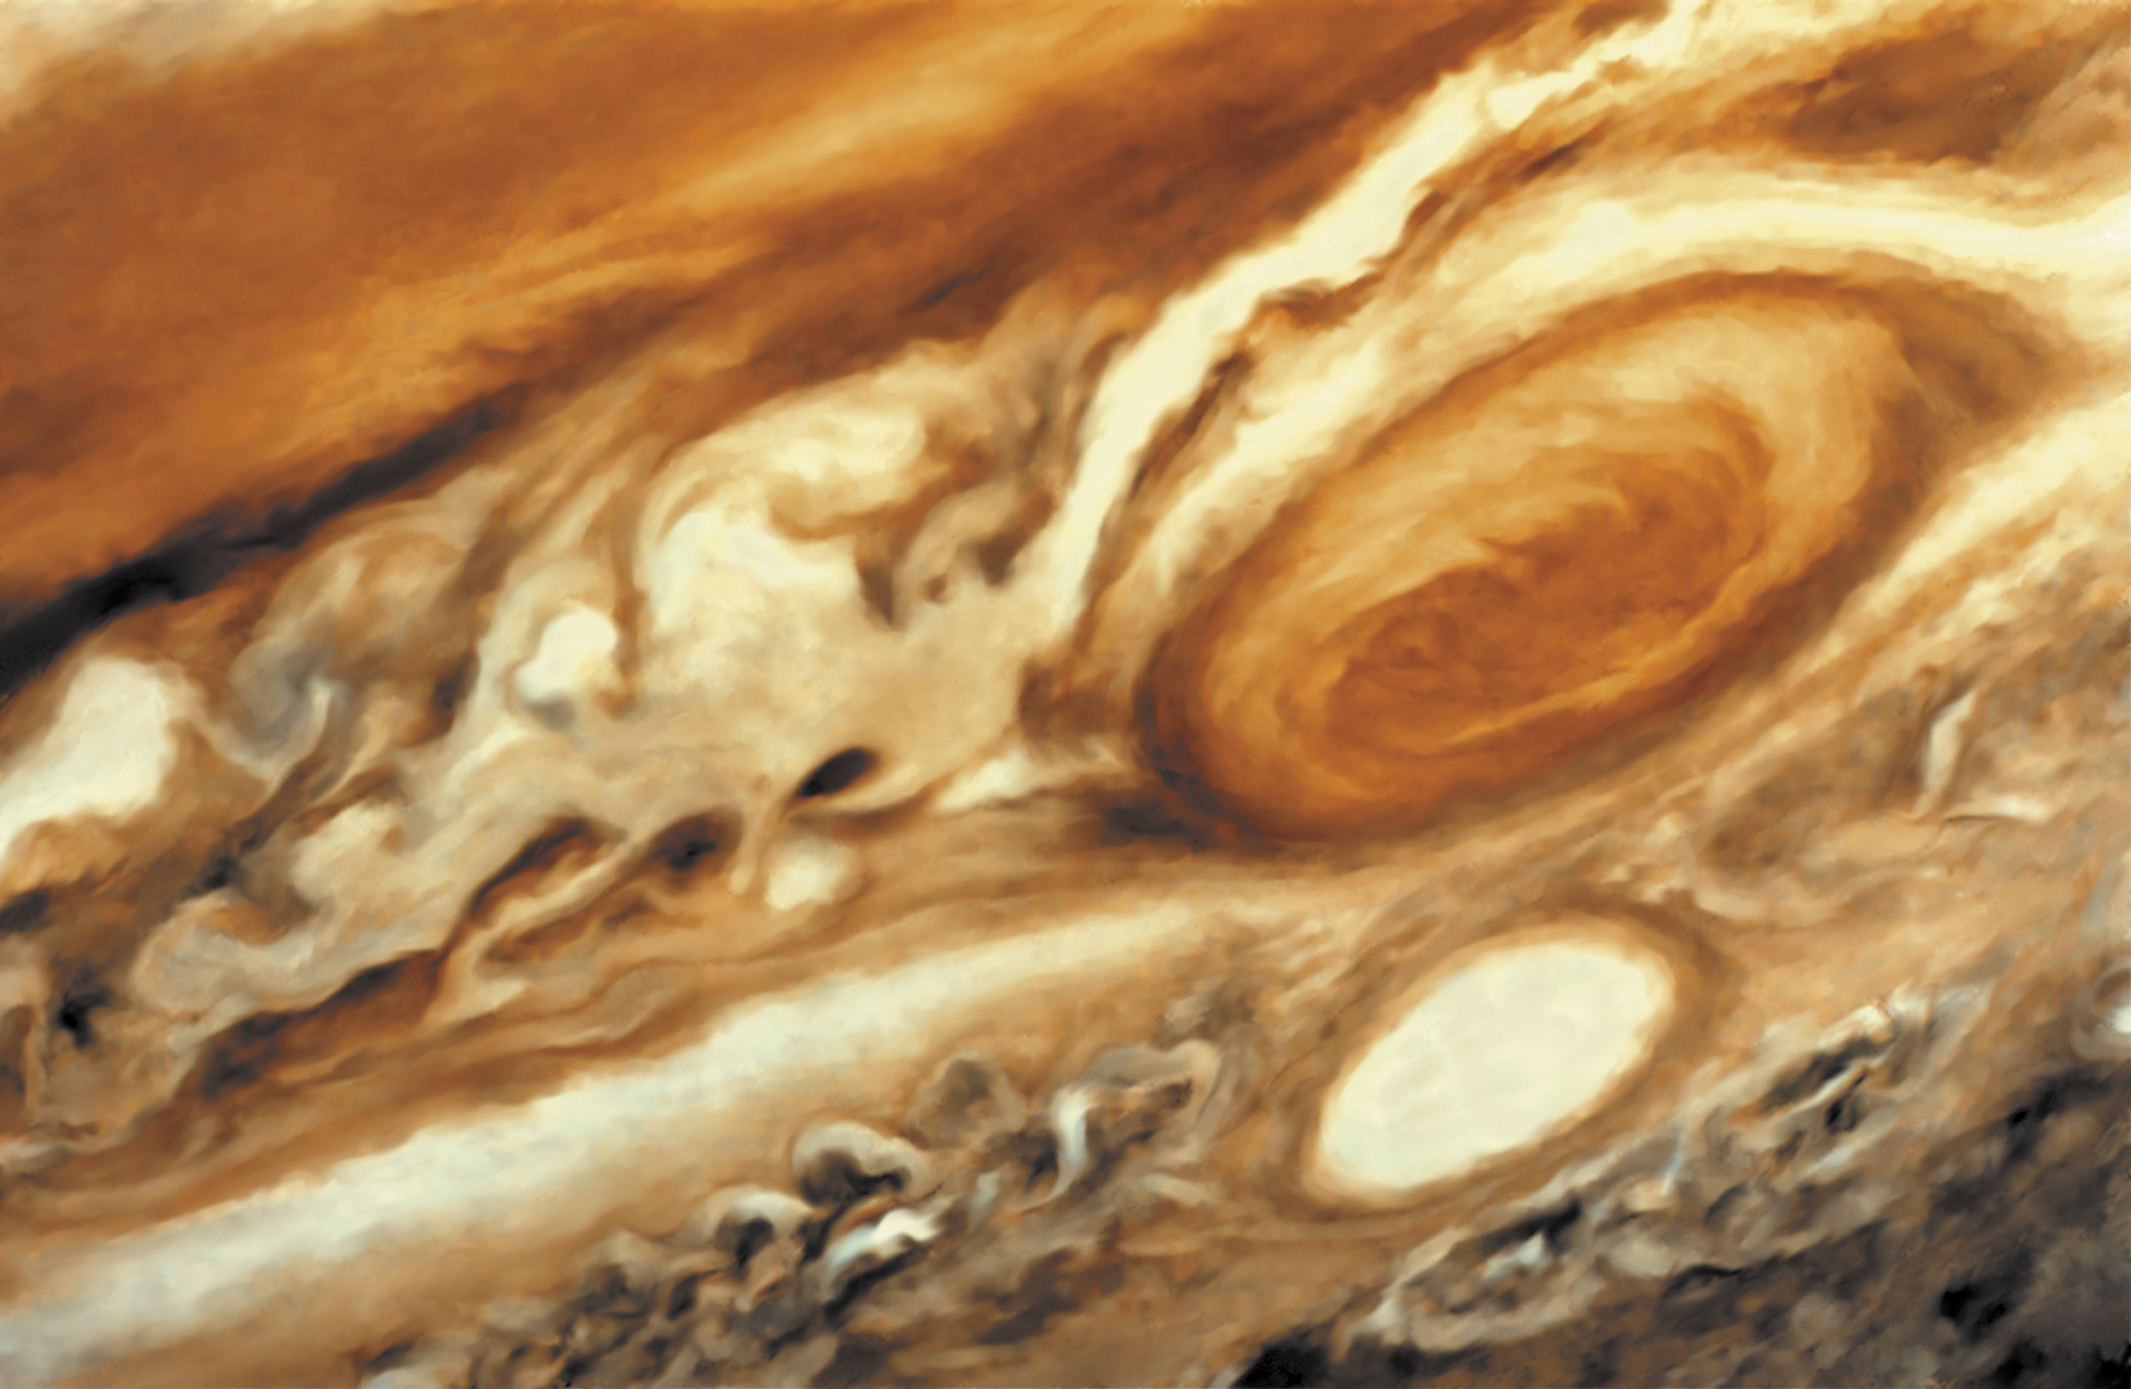 Jupiter, It is thought that the Great Red Spot on Jupiter is a huge storm, twice the size of Earth, with winds of 360 km/h. (Photo by: QAI Publishing/Universal Images Group via Getty Images)